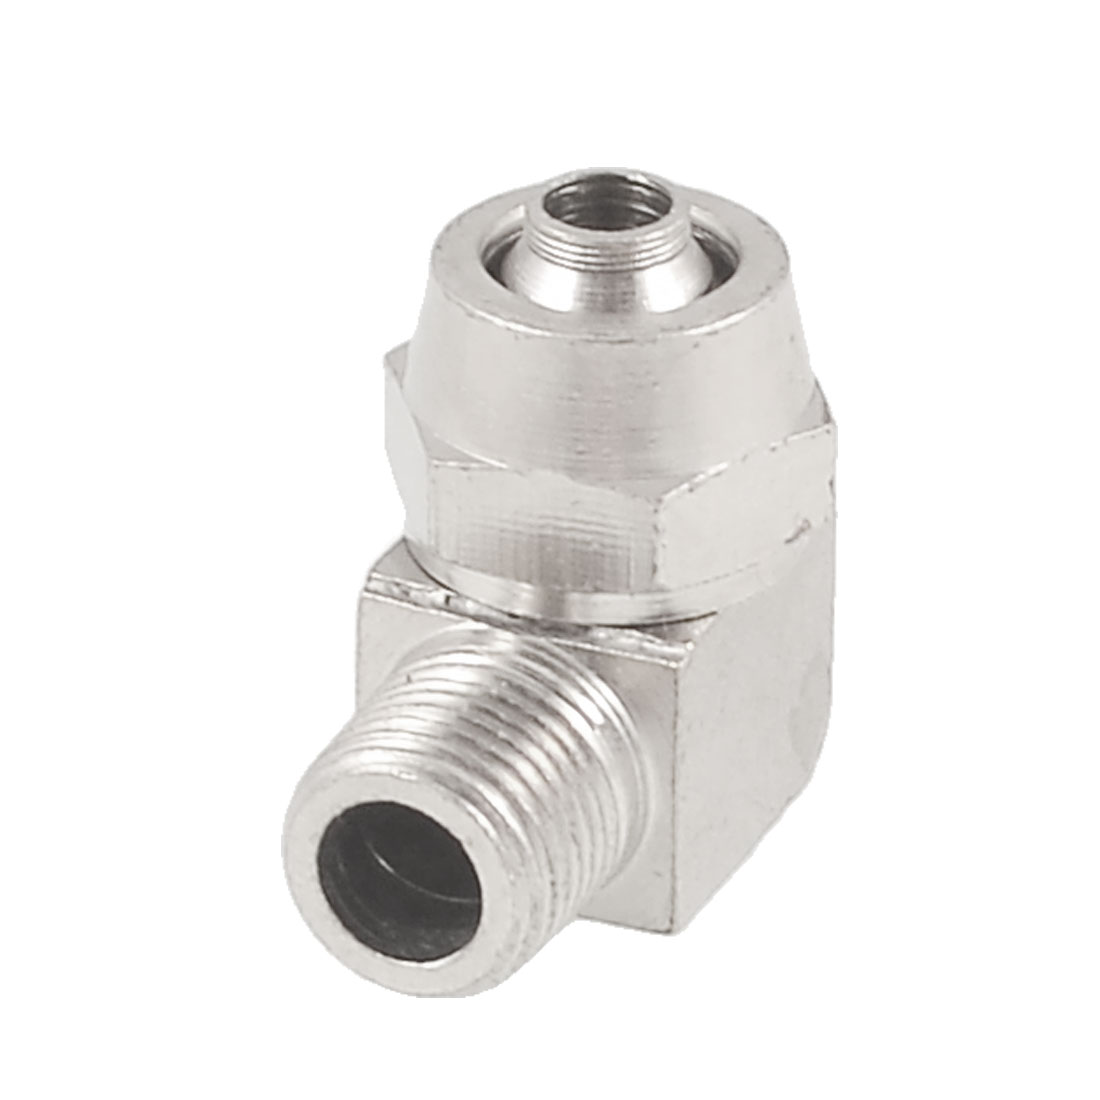 8mm Tube 10mm Thread L Shaped Right Angle Quick Coupler Fittings